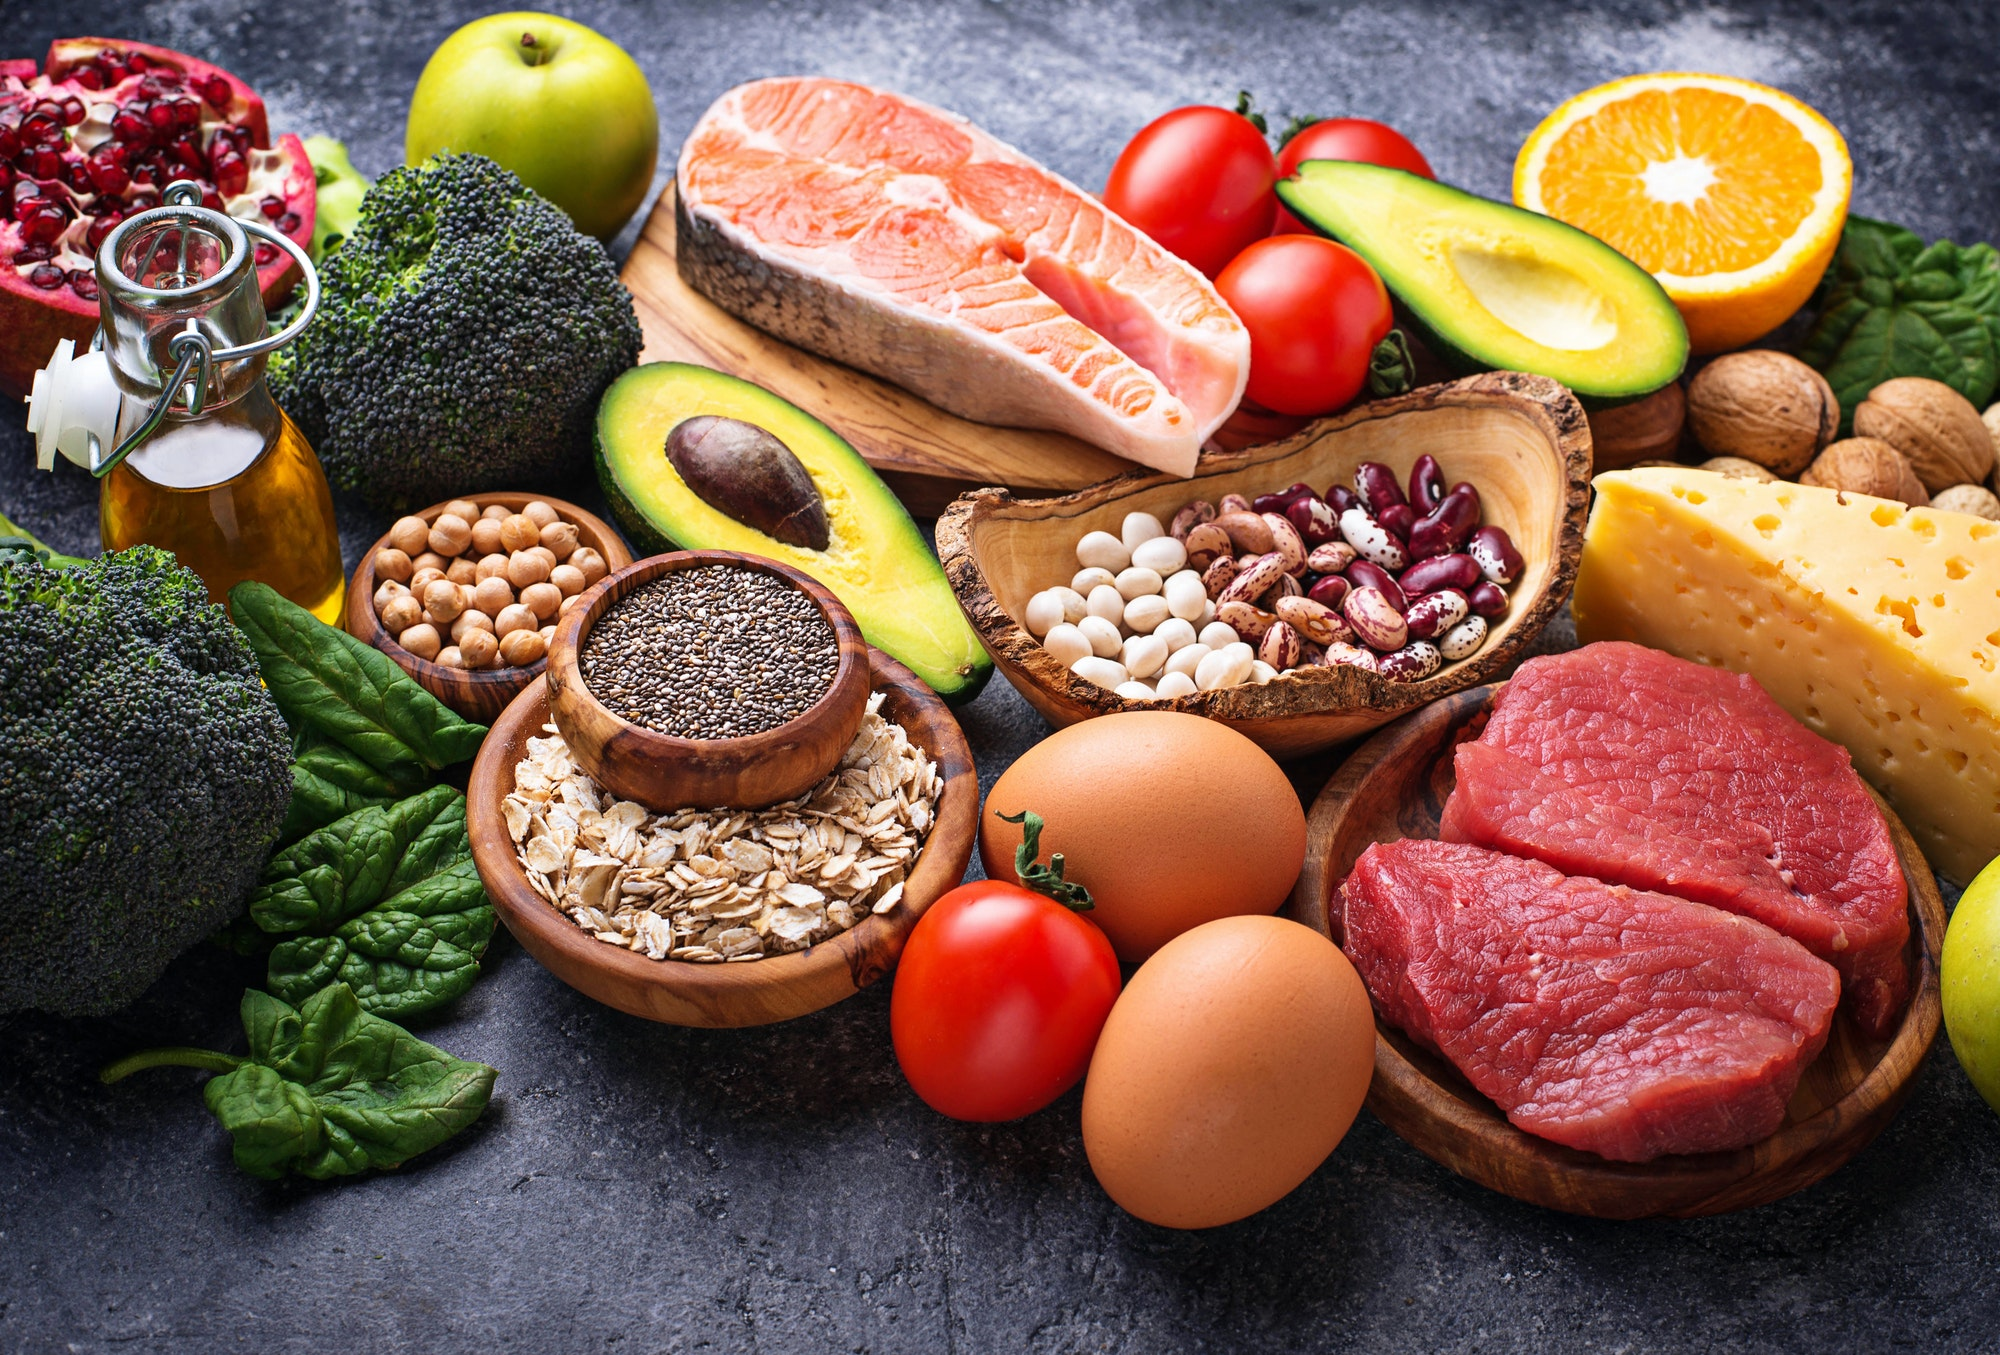 Organic food for healthy nutrition and superfoods